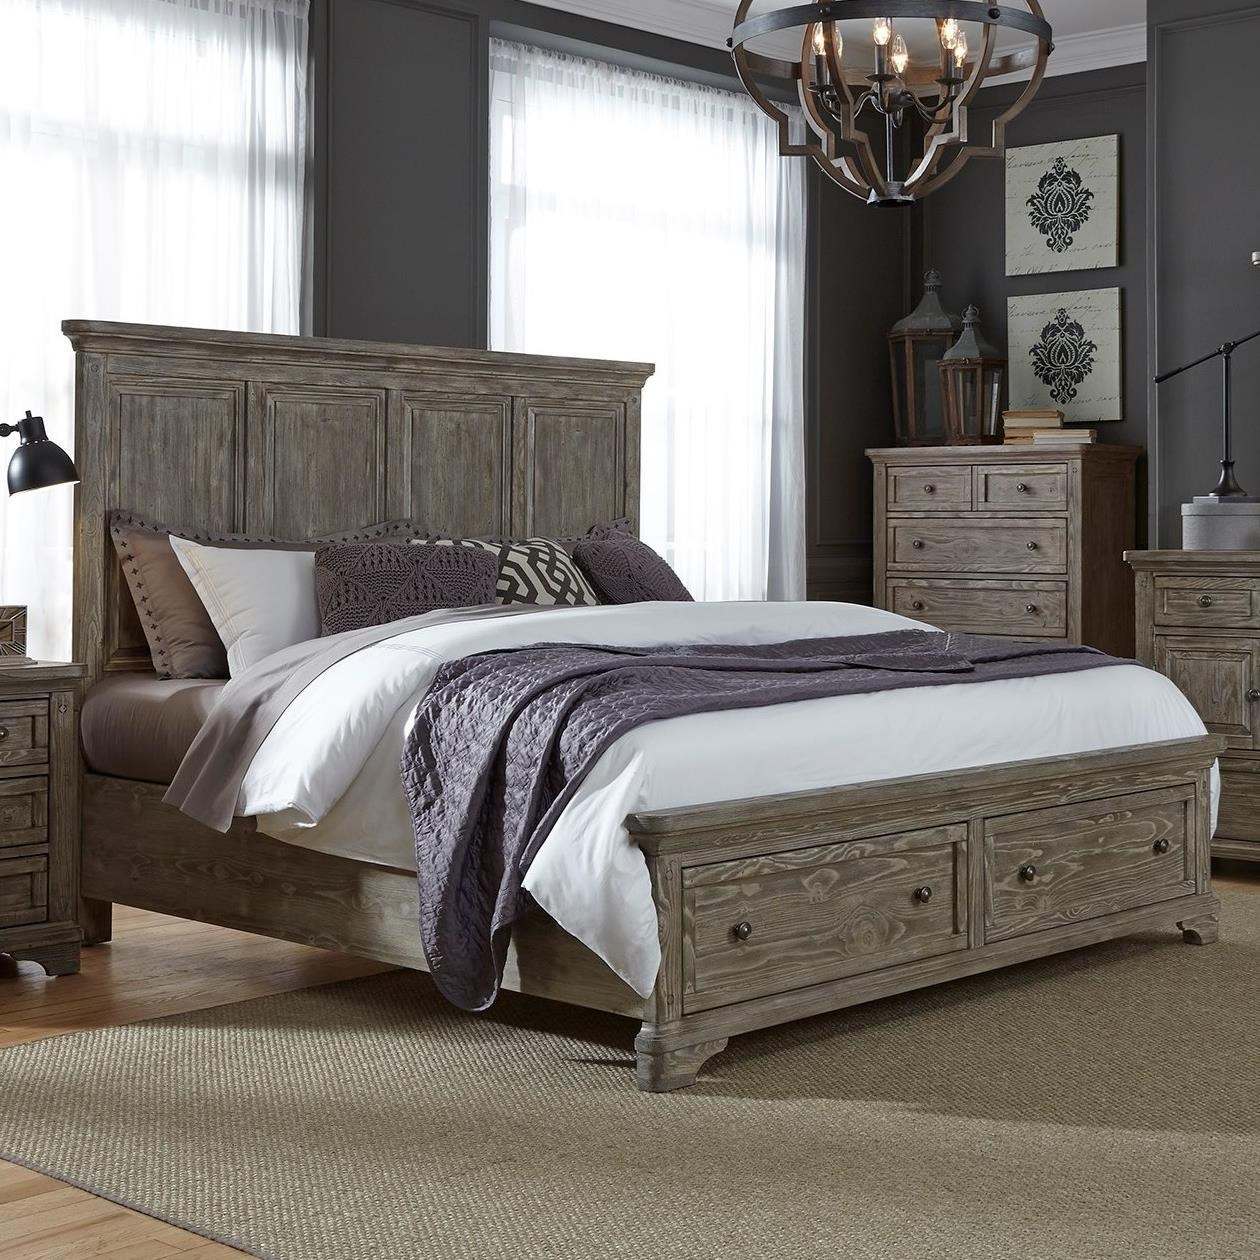 Mattress Warehouse Front Royal Va: Sarah Randolph Designs Highlands King Storage Bed With 2